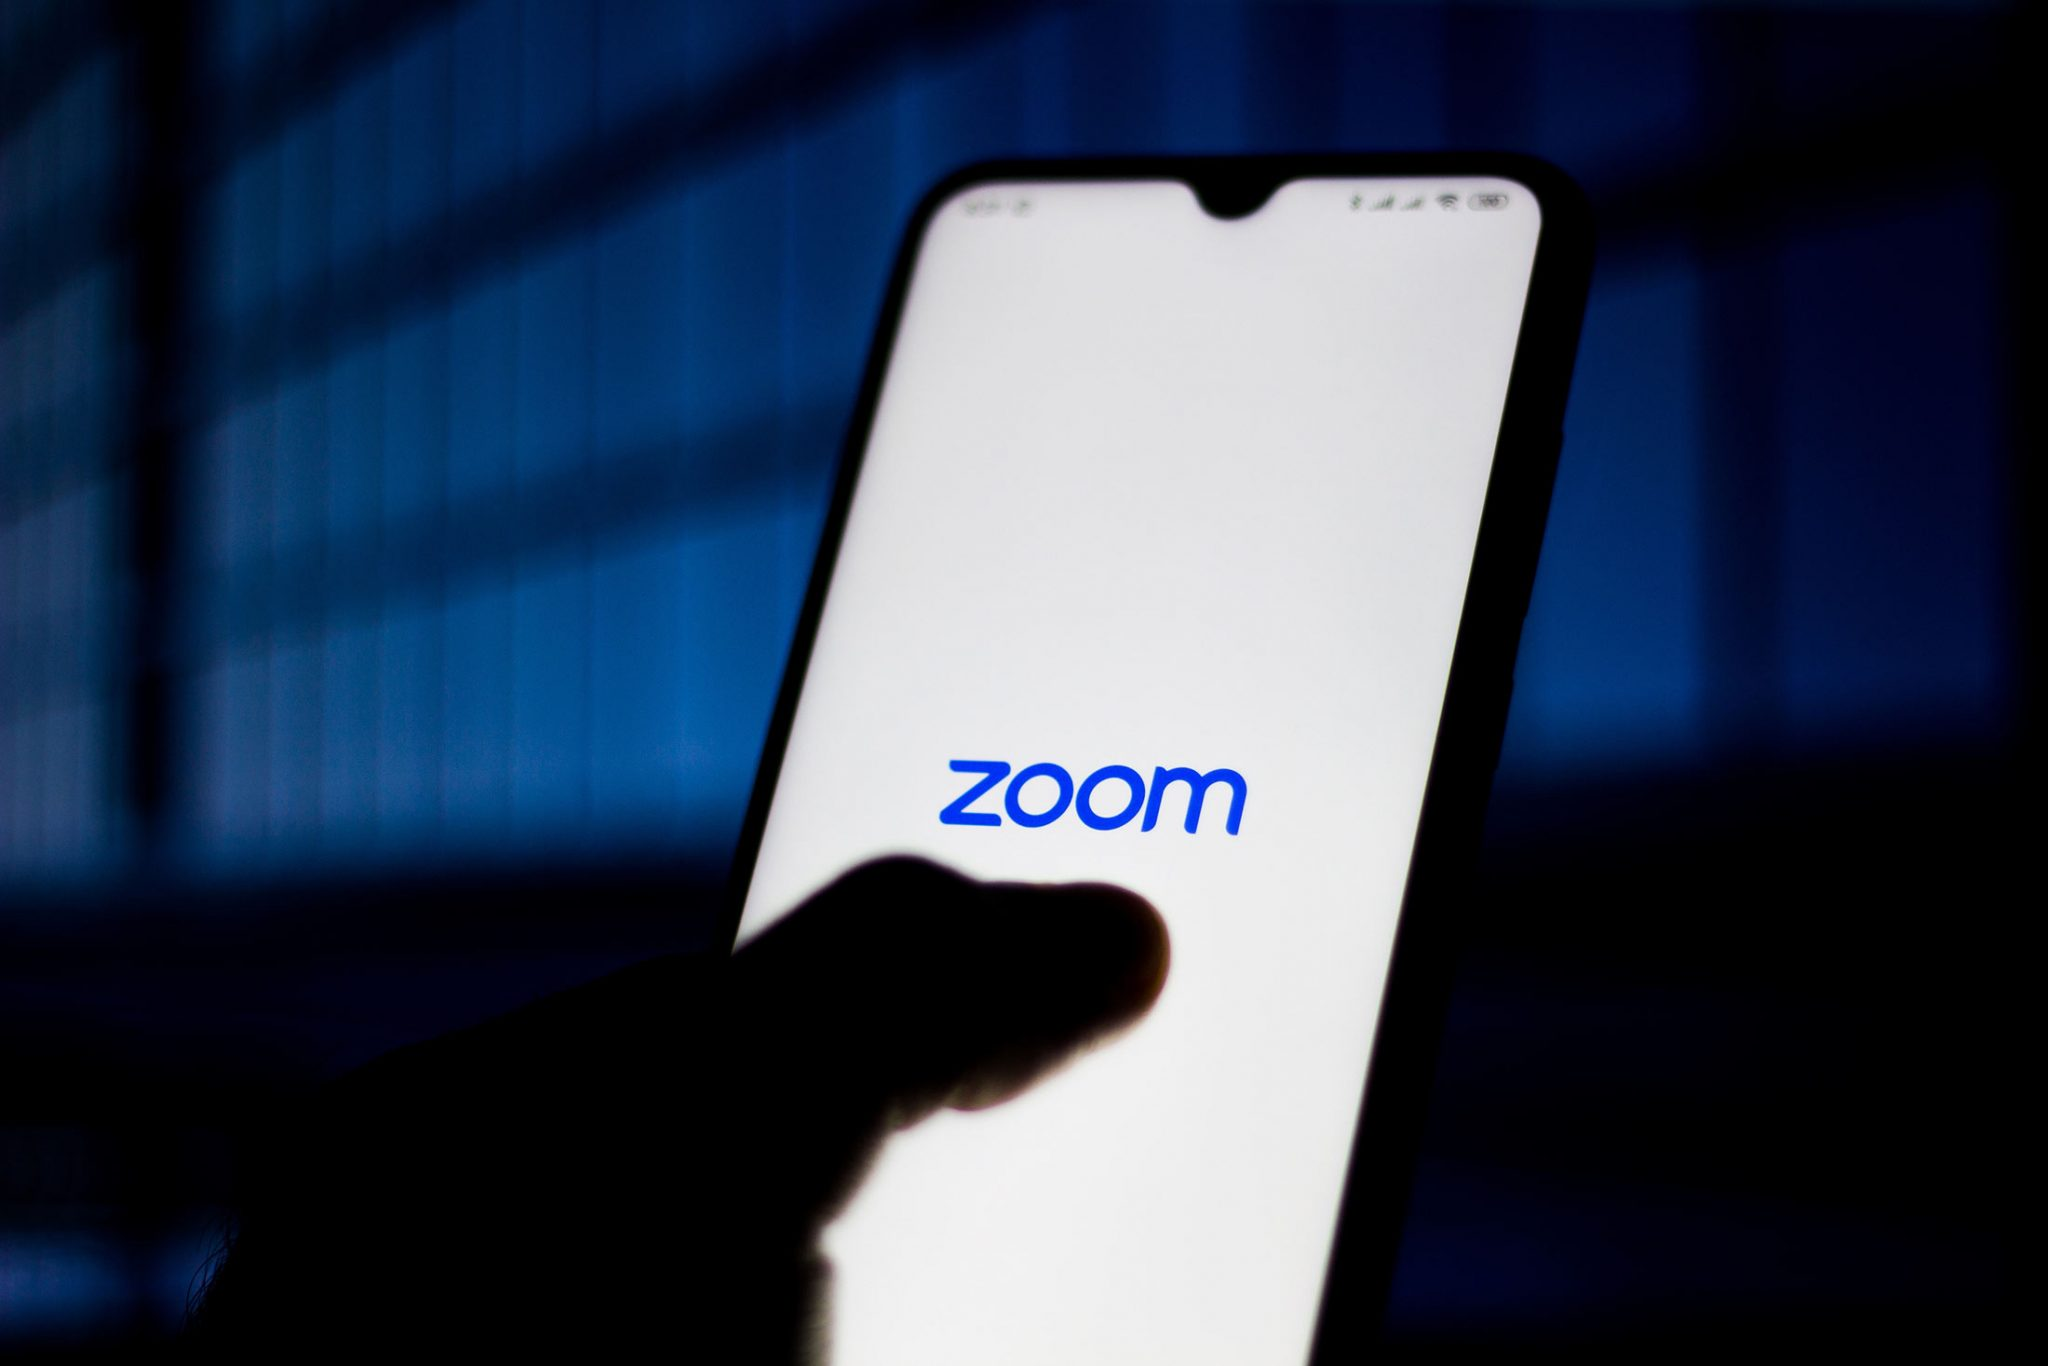 Is ZOOM As Safe As It Claims To Be? We Break It Down.